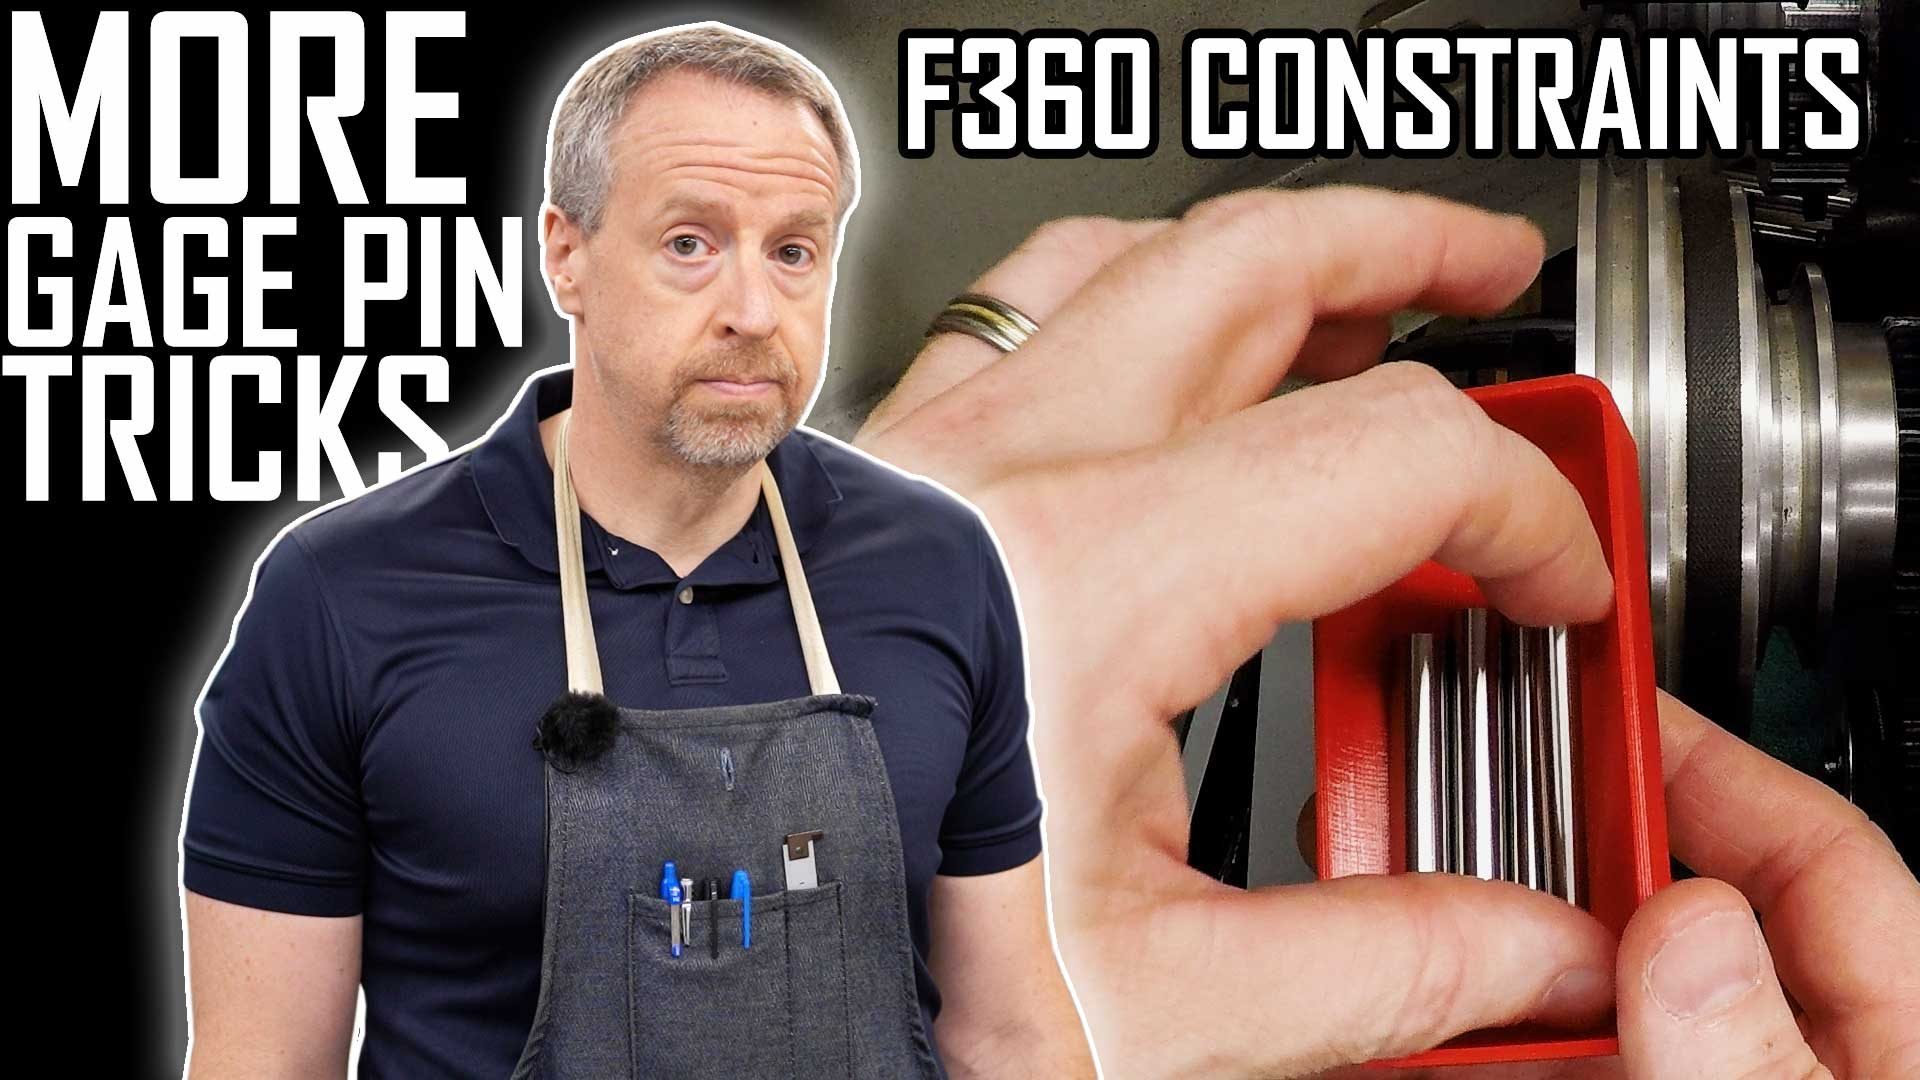 More Stupid Gage Pin Tricks: Measuring Angles   Fusion 360 Constraints